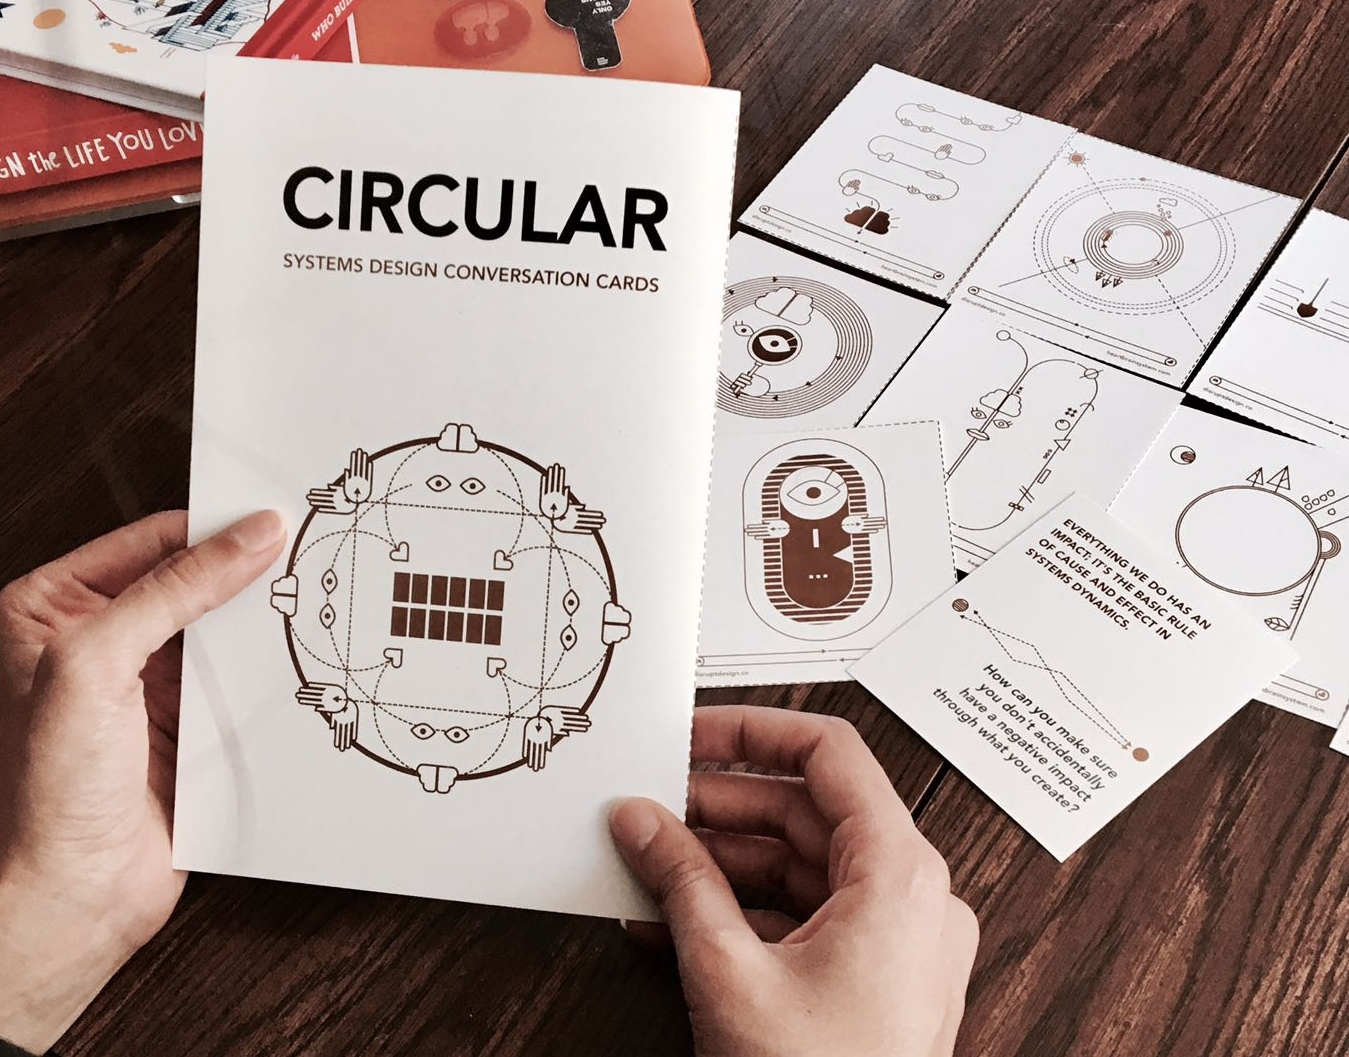 Circular Systems Design Conversation Cards in use 2.jpeg